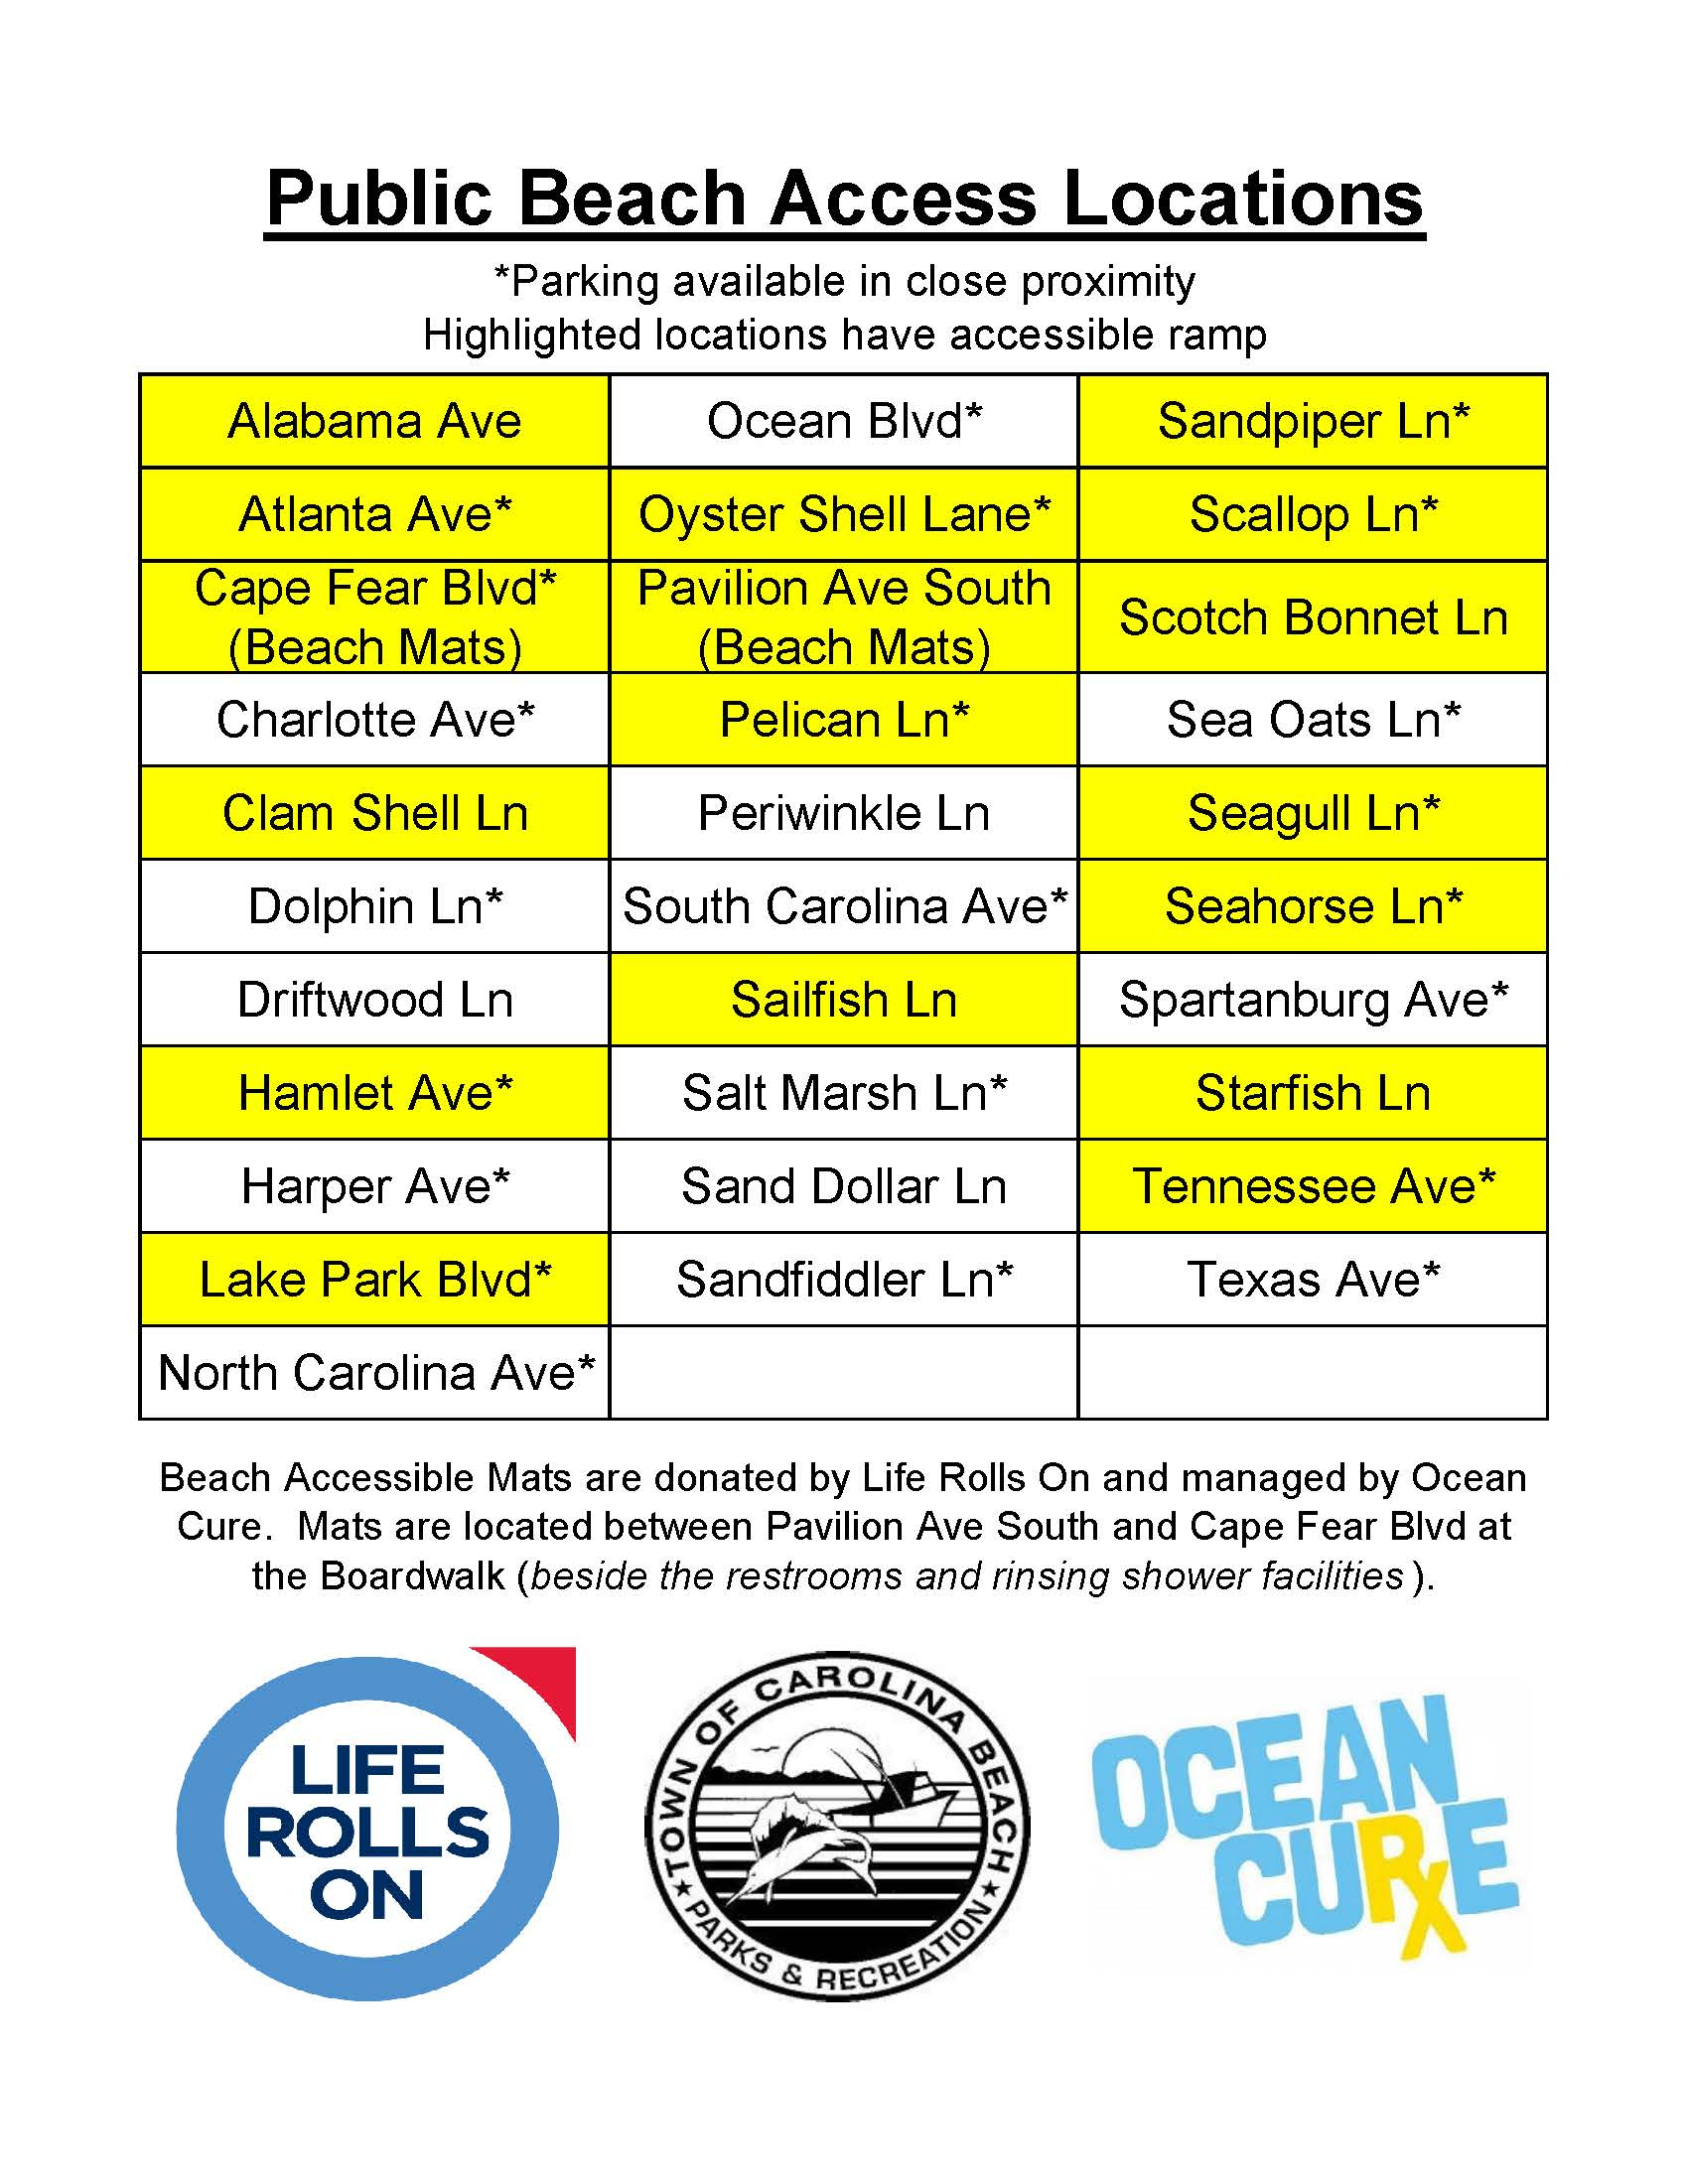 Public Beach Access Locations 5-10-19